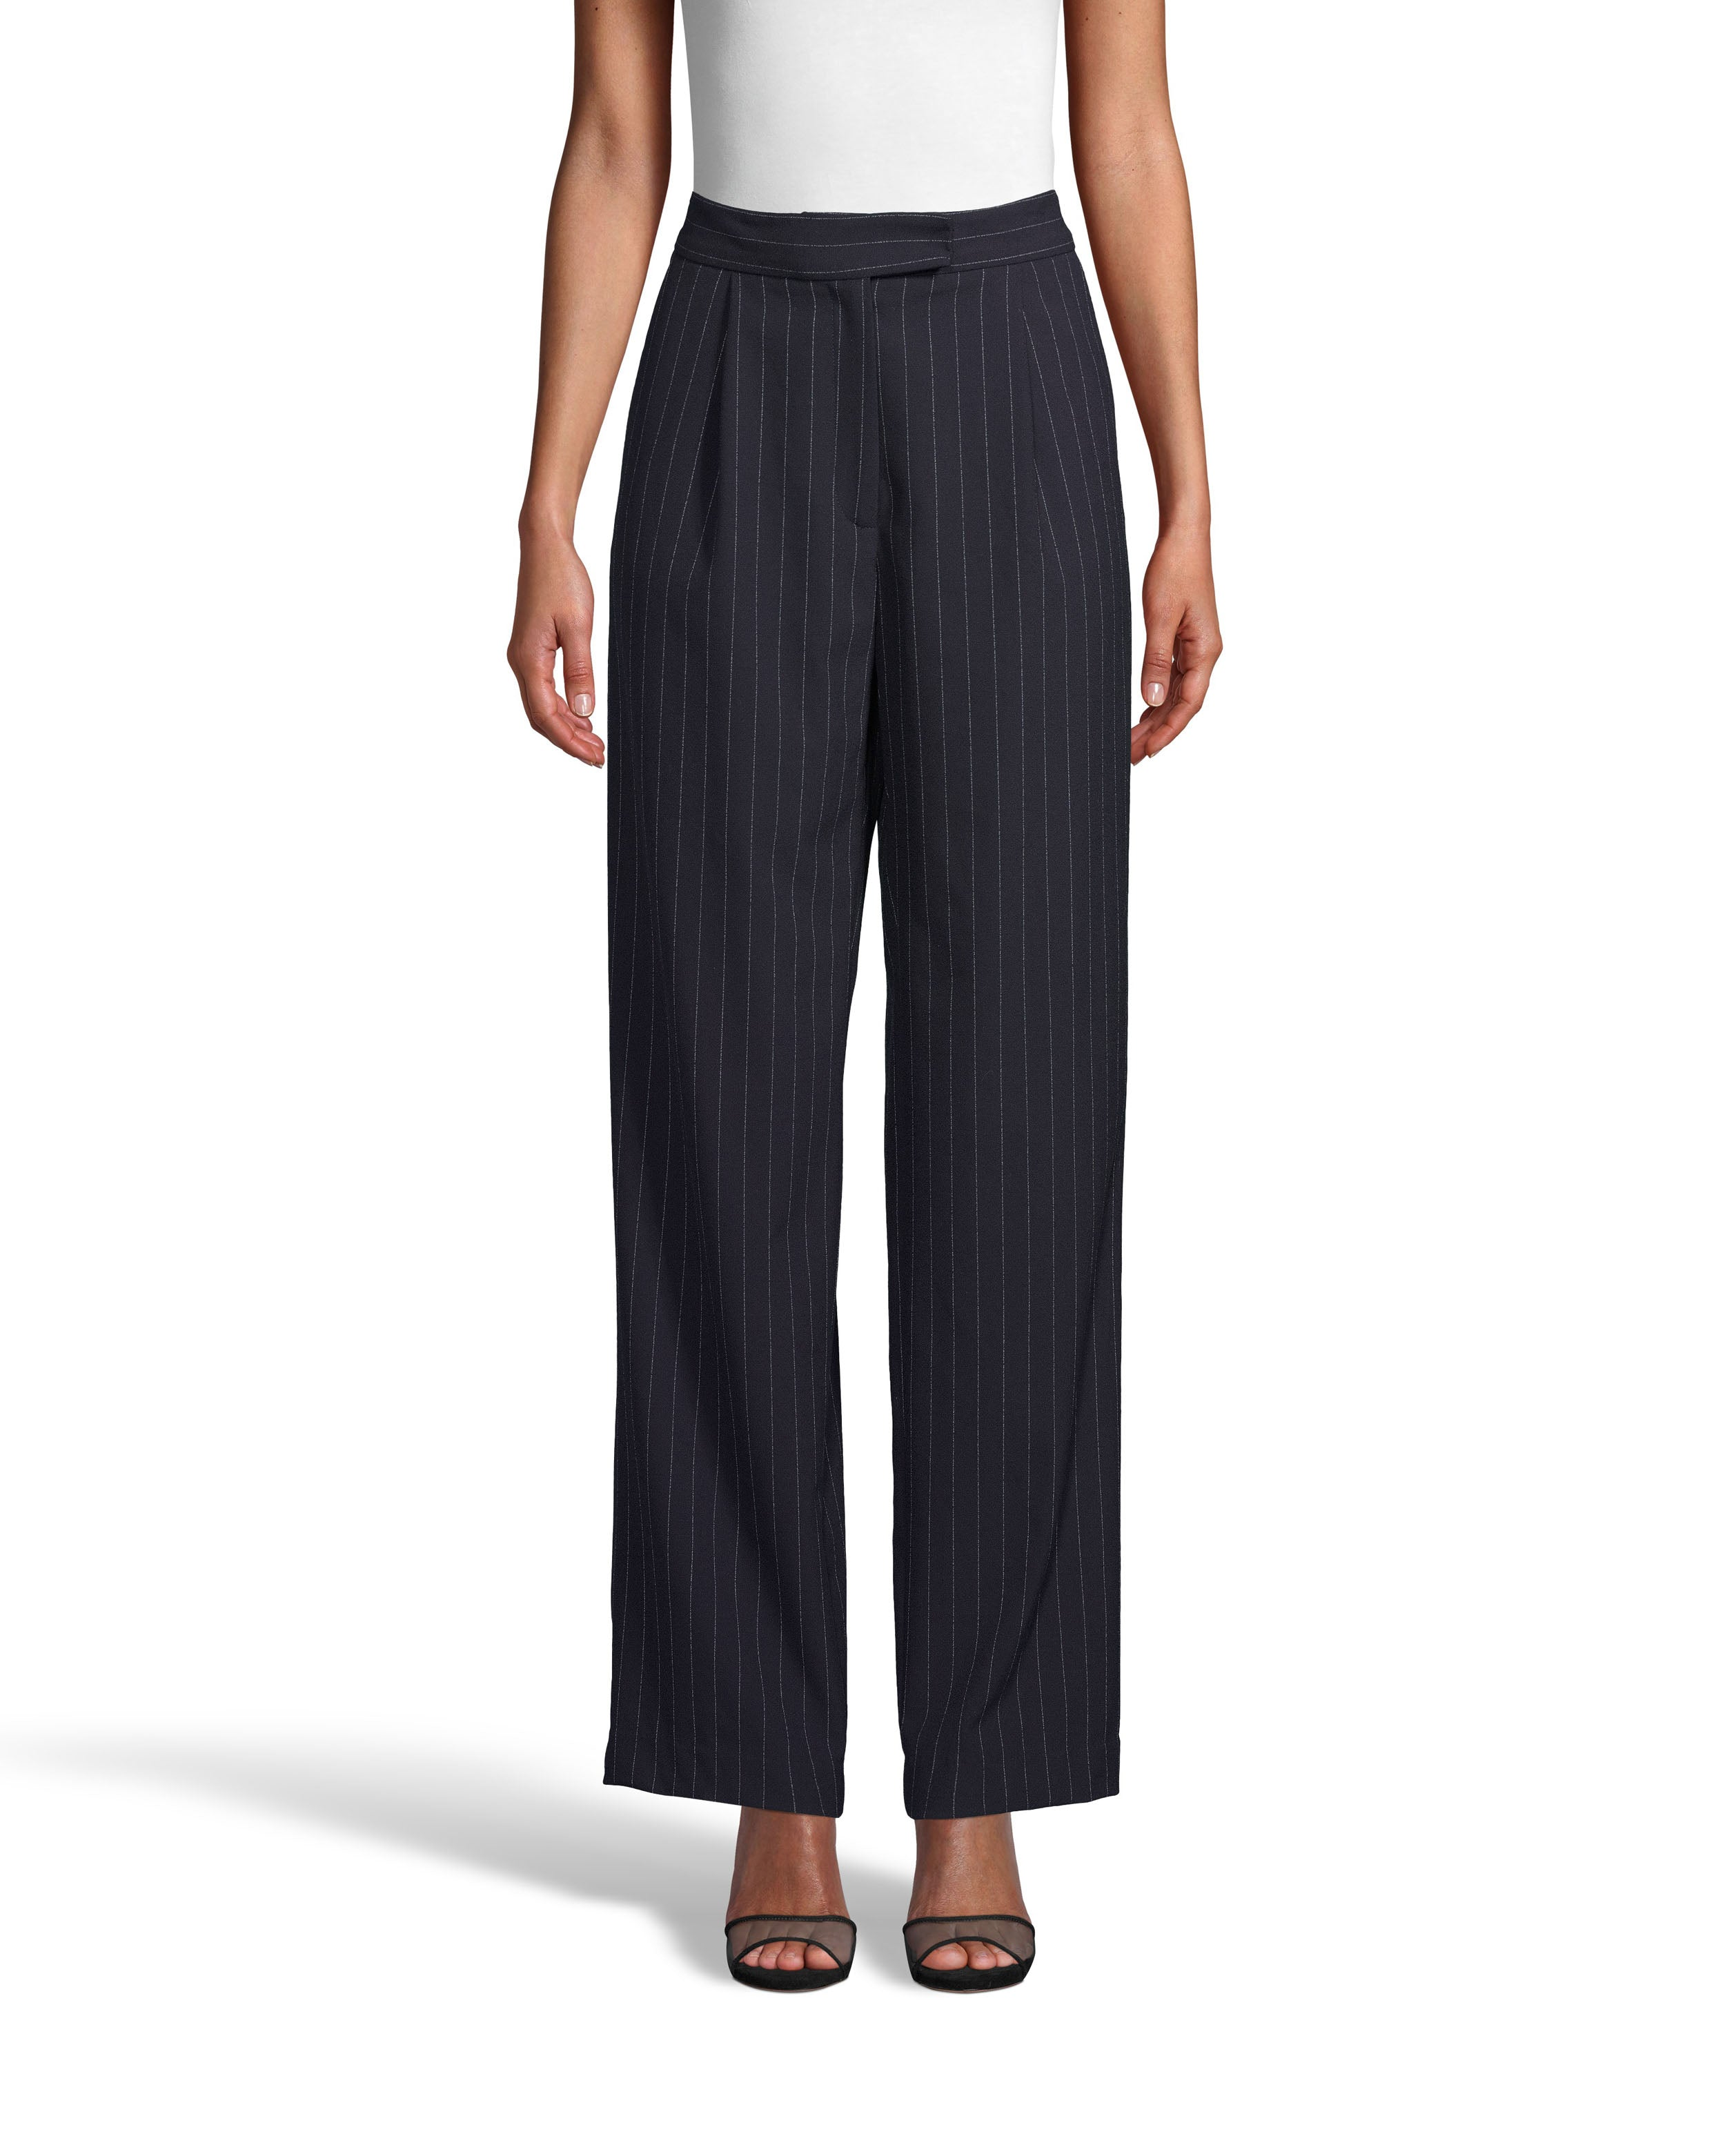 nicole miller pinstripe pleated front front trouser pant in navy blue | polyester/spandex/viscose | size 0